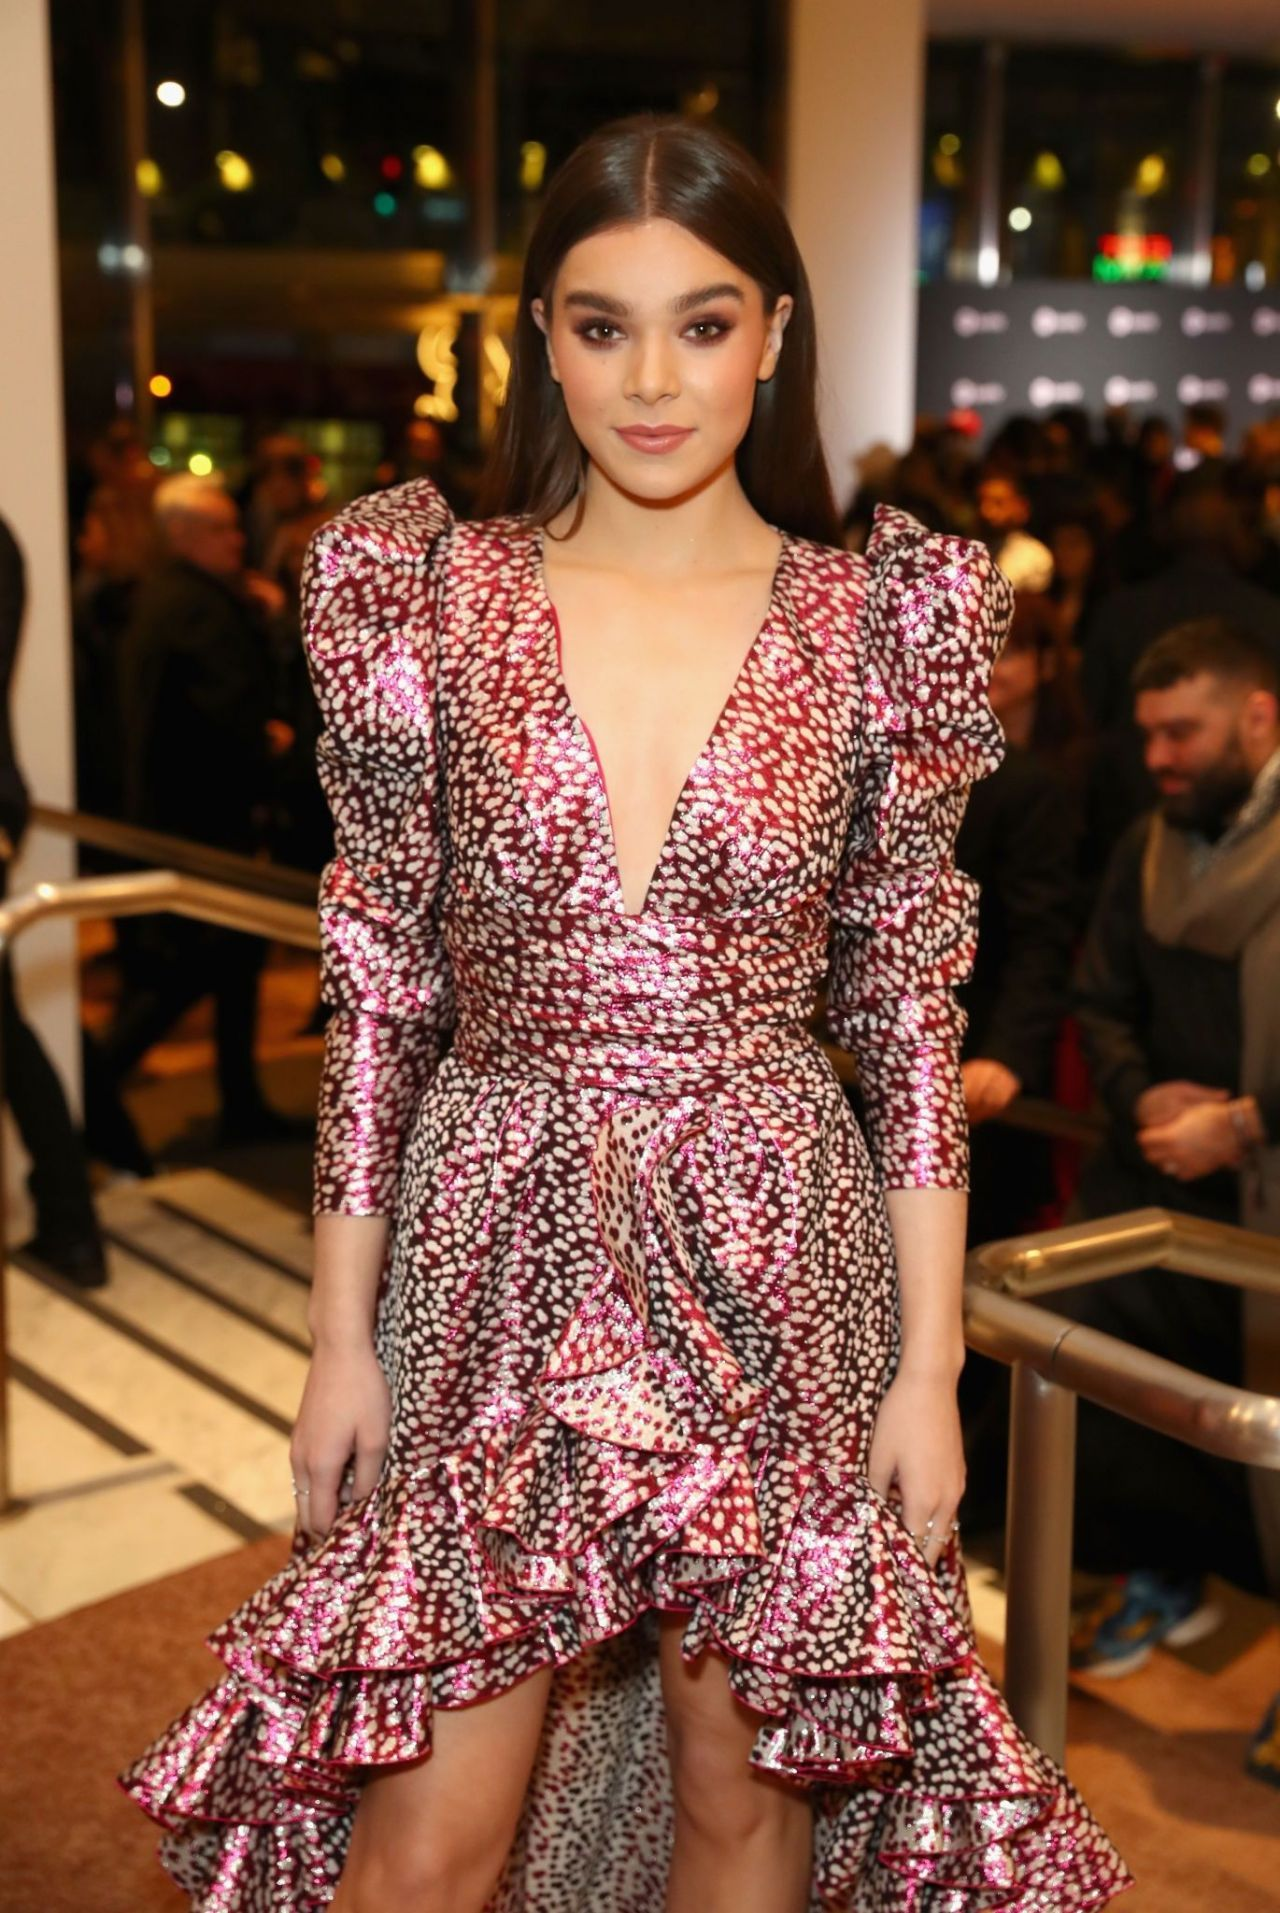 Hailee Steinfeld At Best New Artist 2019 Event in LA | Hollywood